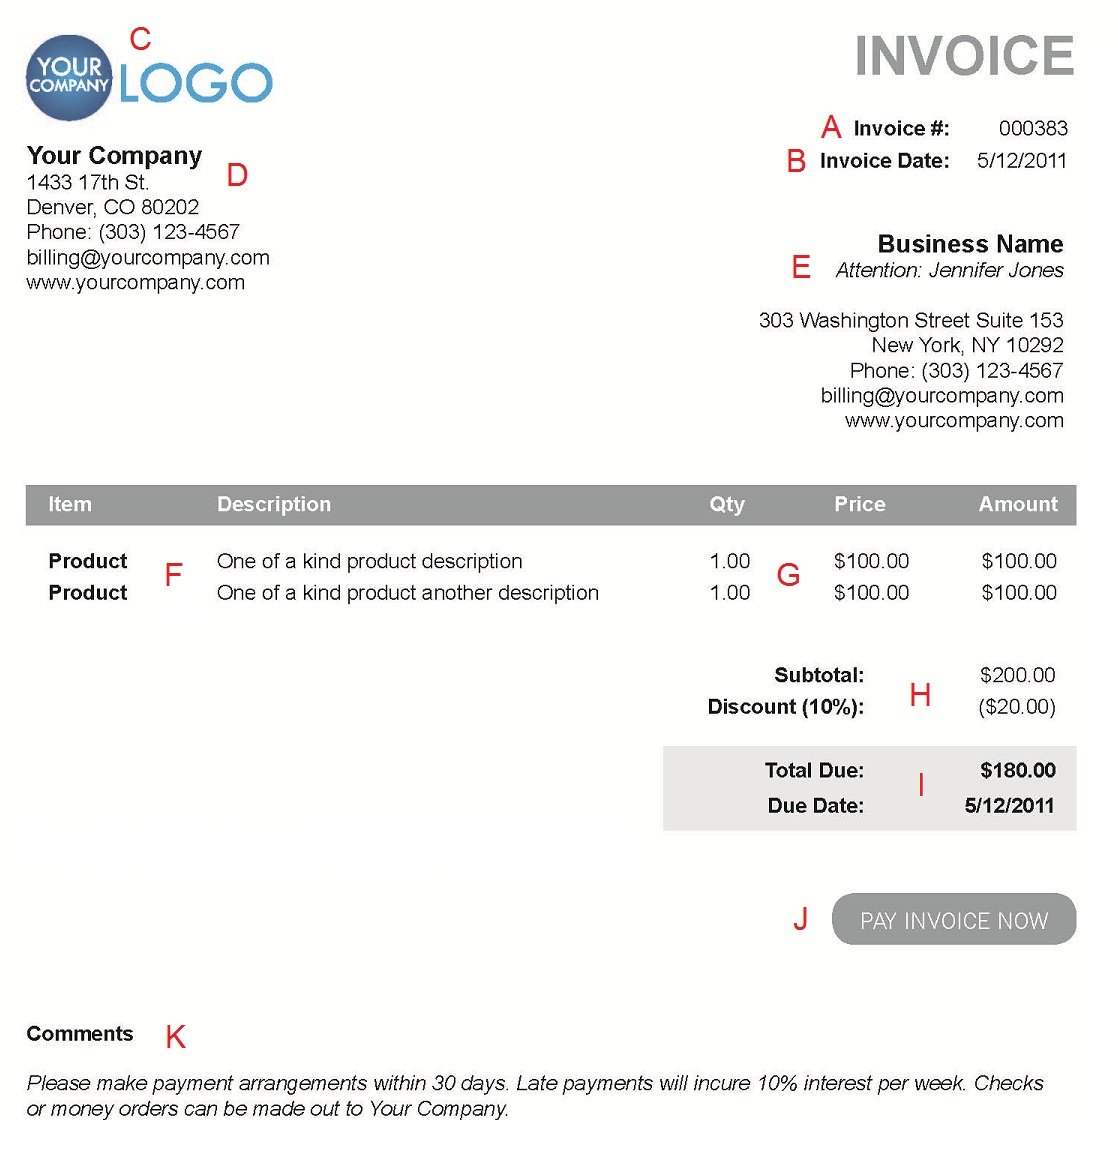 Atvingus  Outstanding The  Different Sections Of An Electronic Payment Invoice With Heavenly A  With Appealing How To Invoice A Company Also Free Invoice Template Uk In Addition Busy Bee Invoicing And How To Make An Invoice For Services As Well As Customizable Invoice Software Additionally Infiniti Q Invoice Price From Paysimplecom With Atvingus  Heavenly The  Different Sections Of An Electronic Payment Invoice With Appealing A  And Outstanding How To Invoice A Company Also Free Invoice Template Uk In Addition Busy Bee Invoicing From Paysimplecom